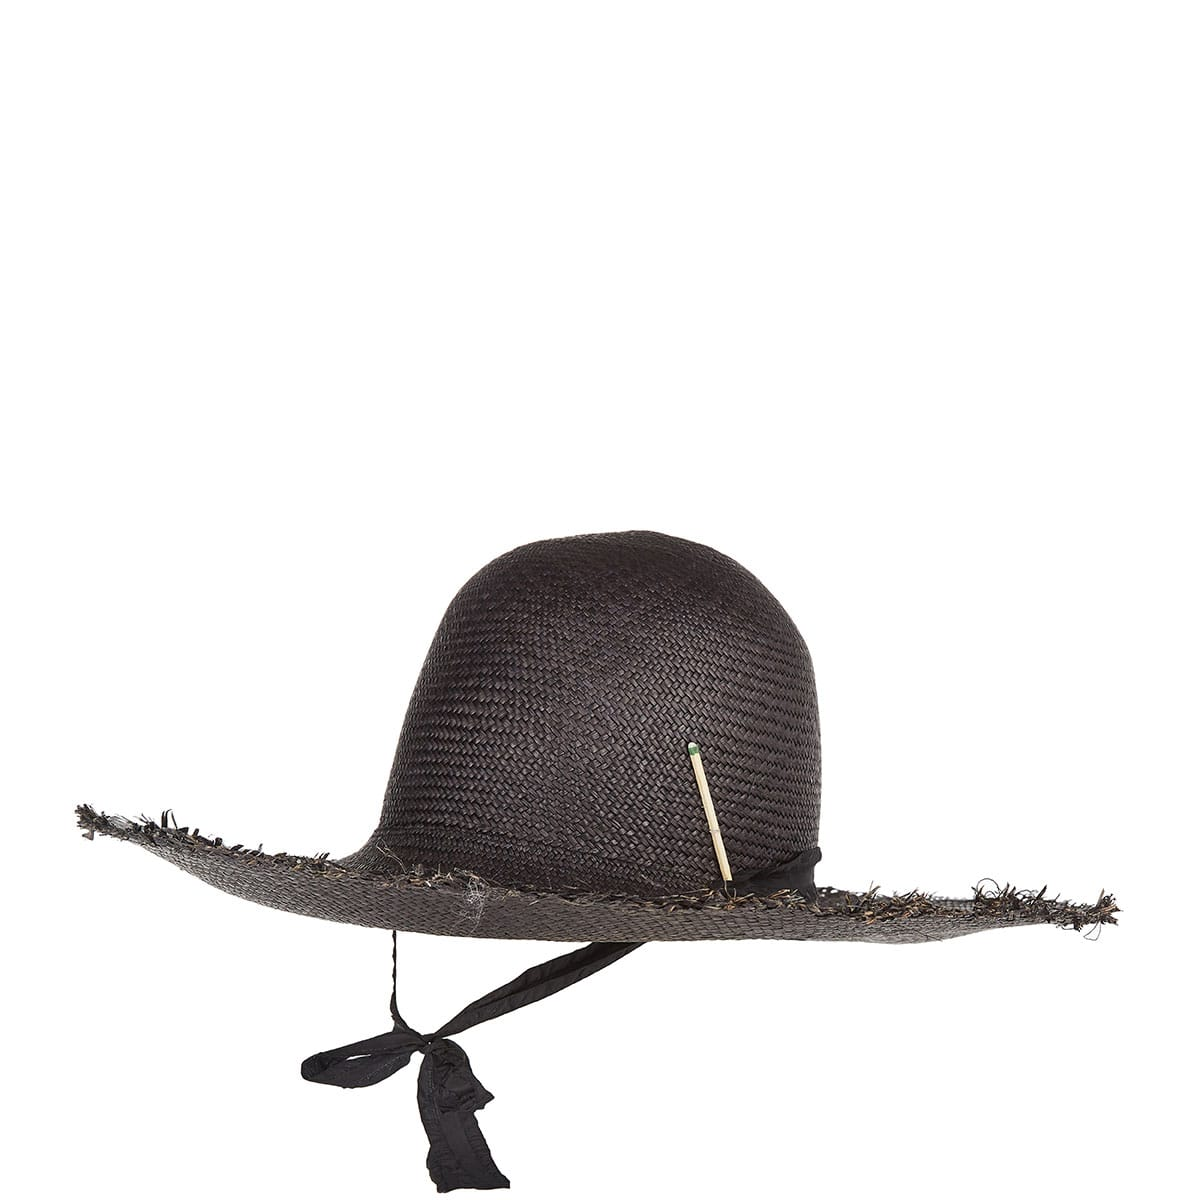 Brock X Nick 4 straw fedora hat